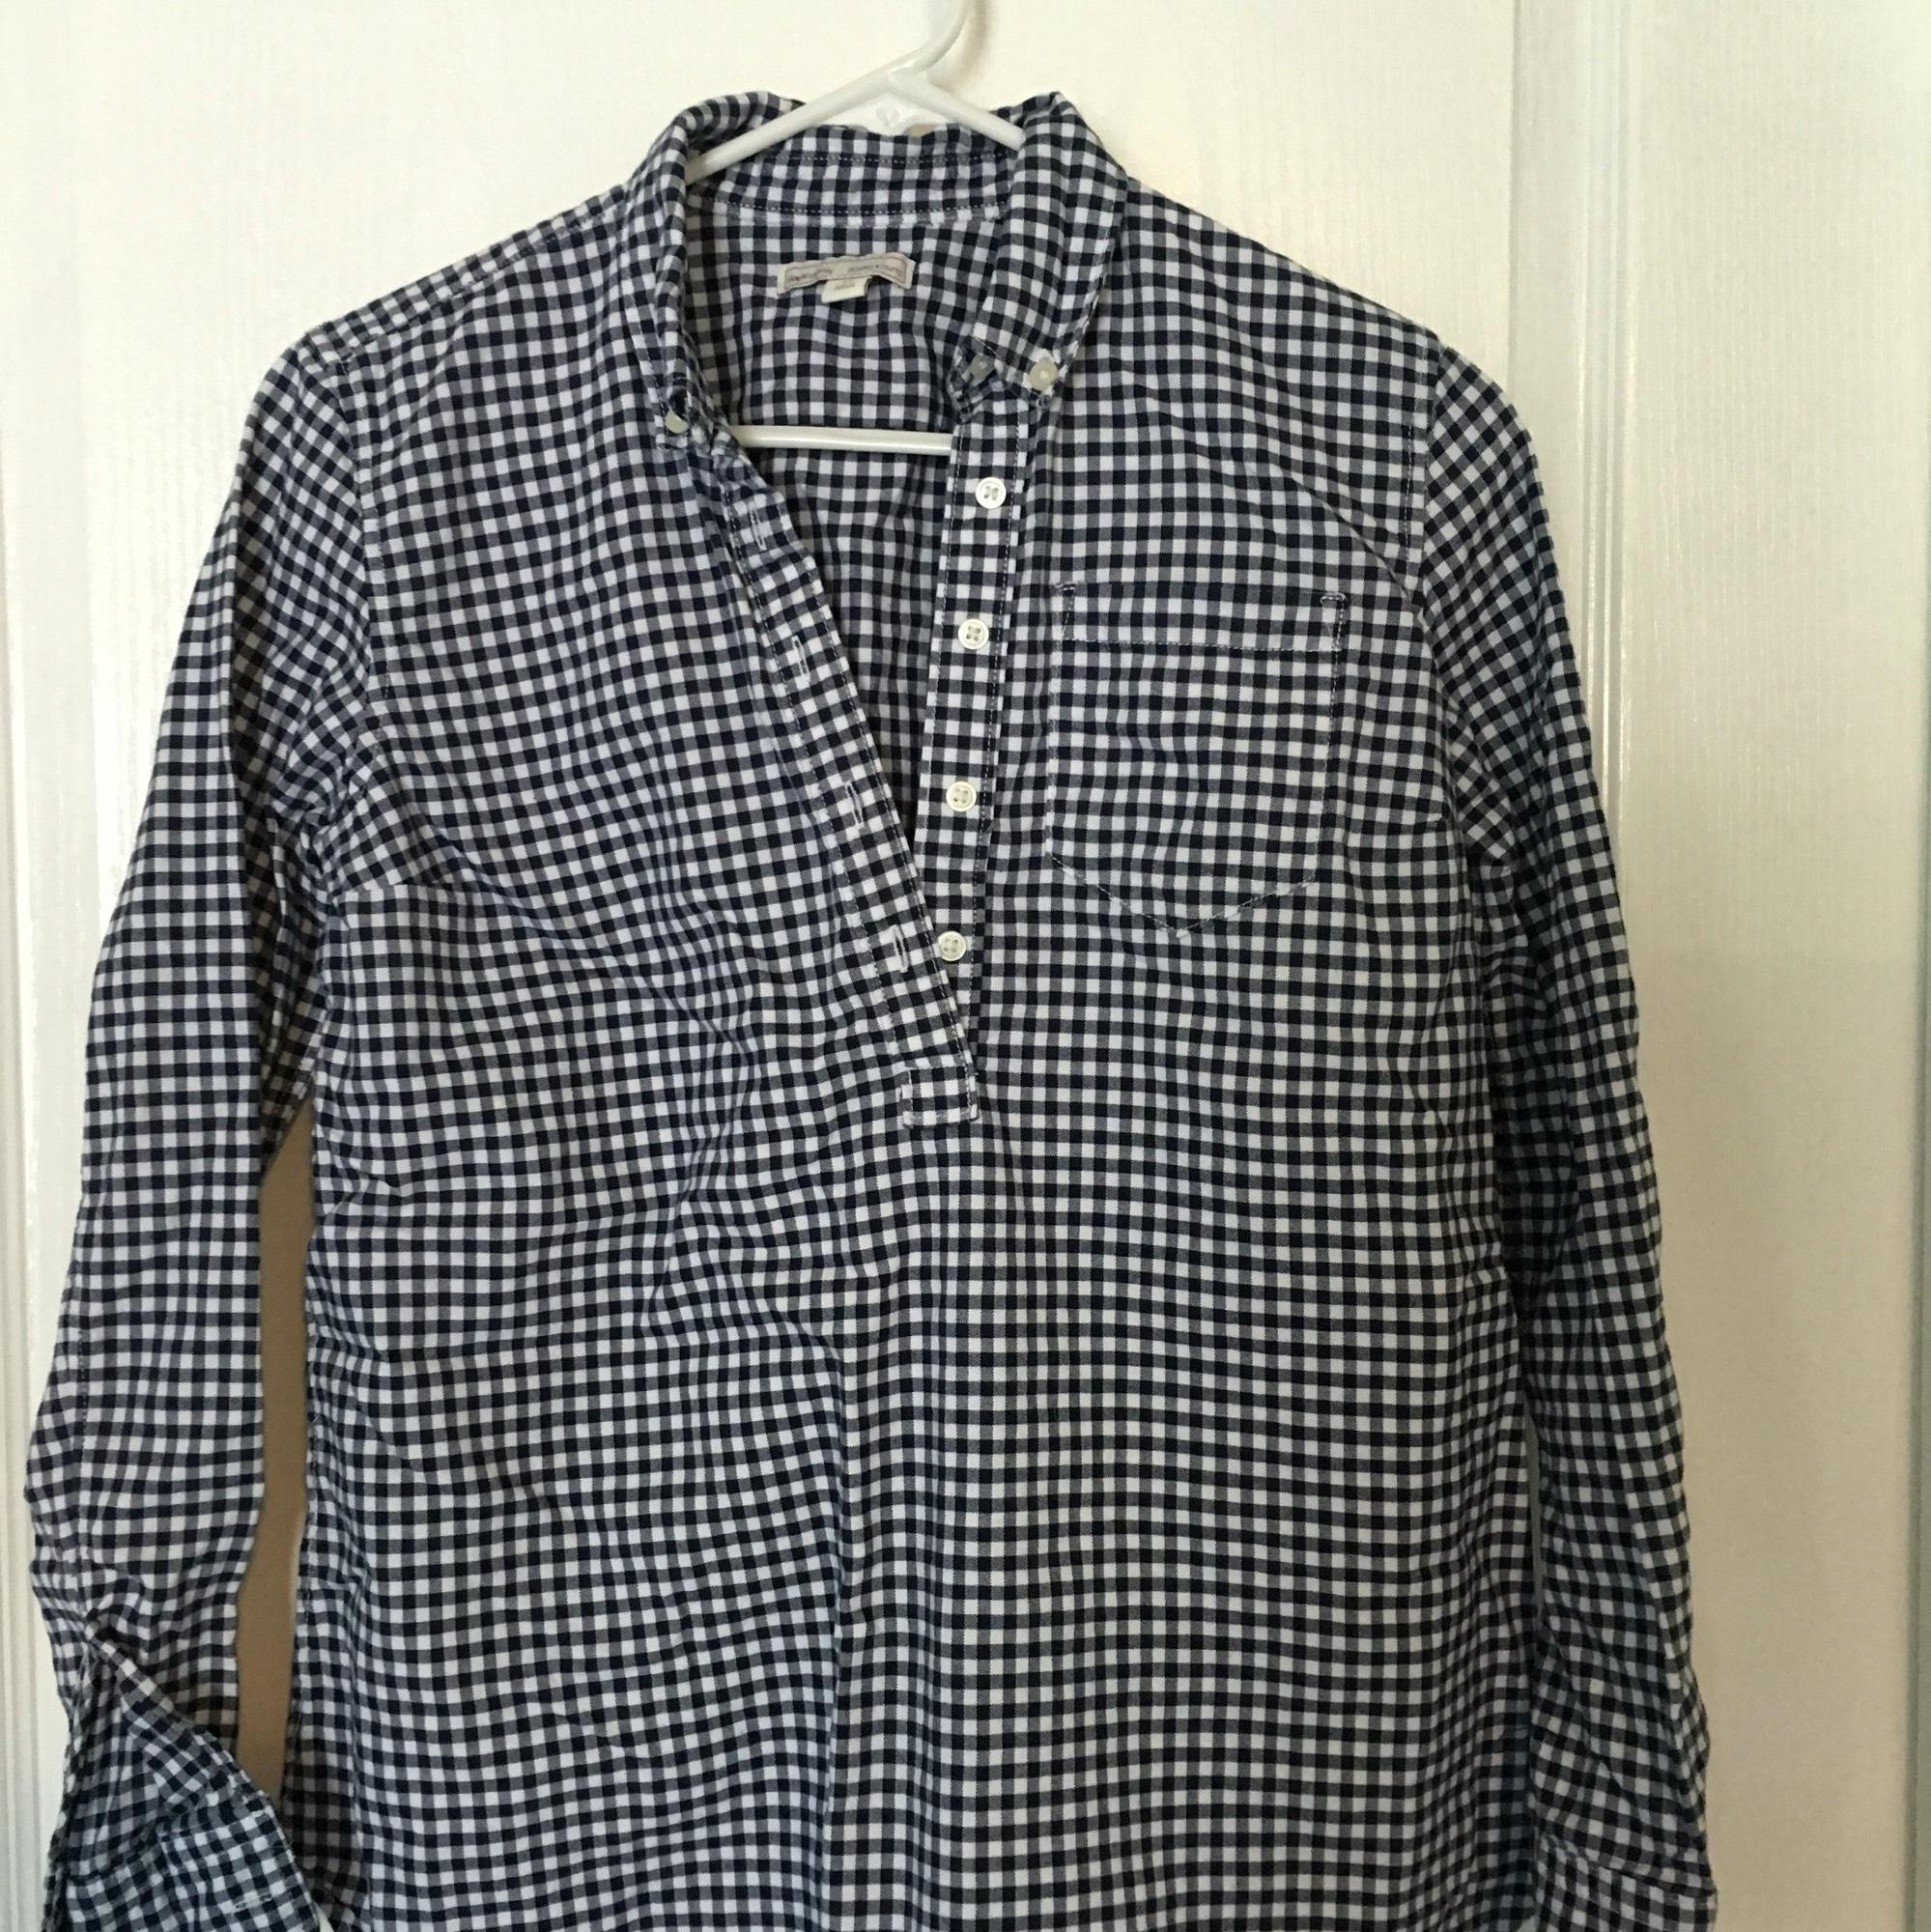 Gap Maternity gingham button down